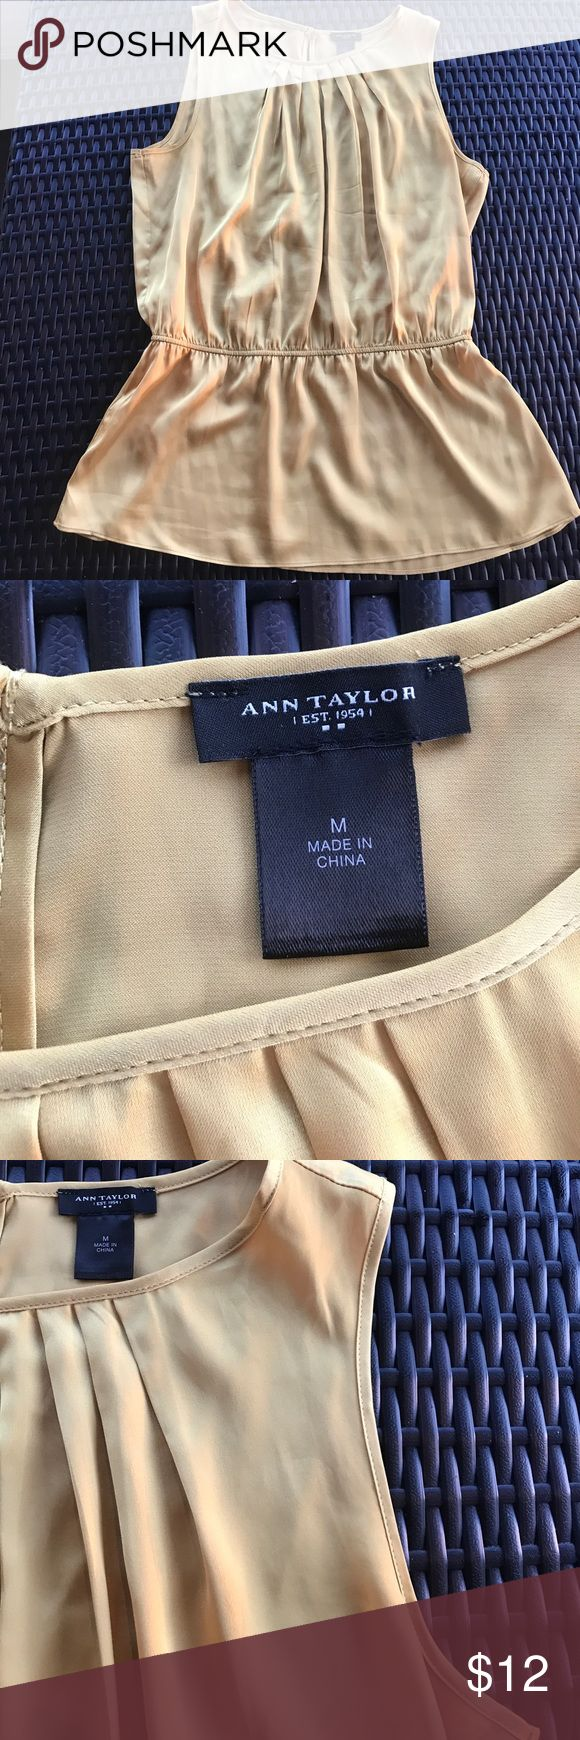 Ann Taylor gold sleeveless blouse 95% Polyester, 5% Spandex with elastic waist!  Great for layering with a fall jackets.  Sight pull on front and lols Ike a loose string as depicted on image 4 Ann Taylor Tops Blouses